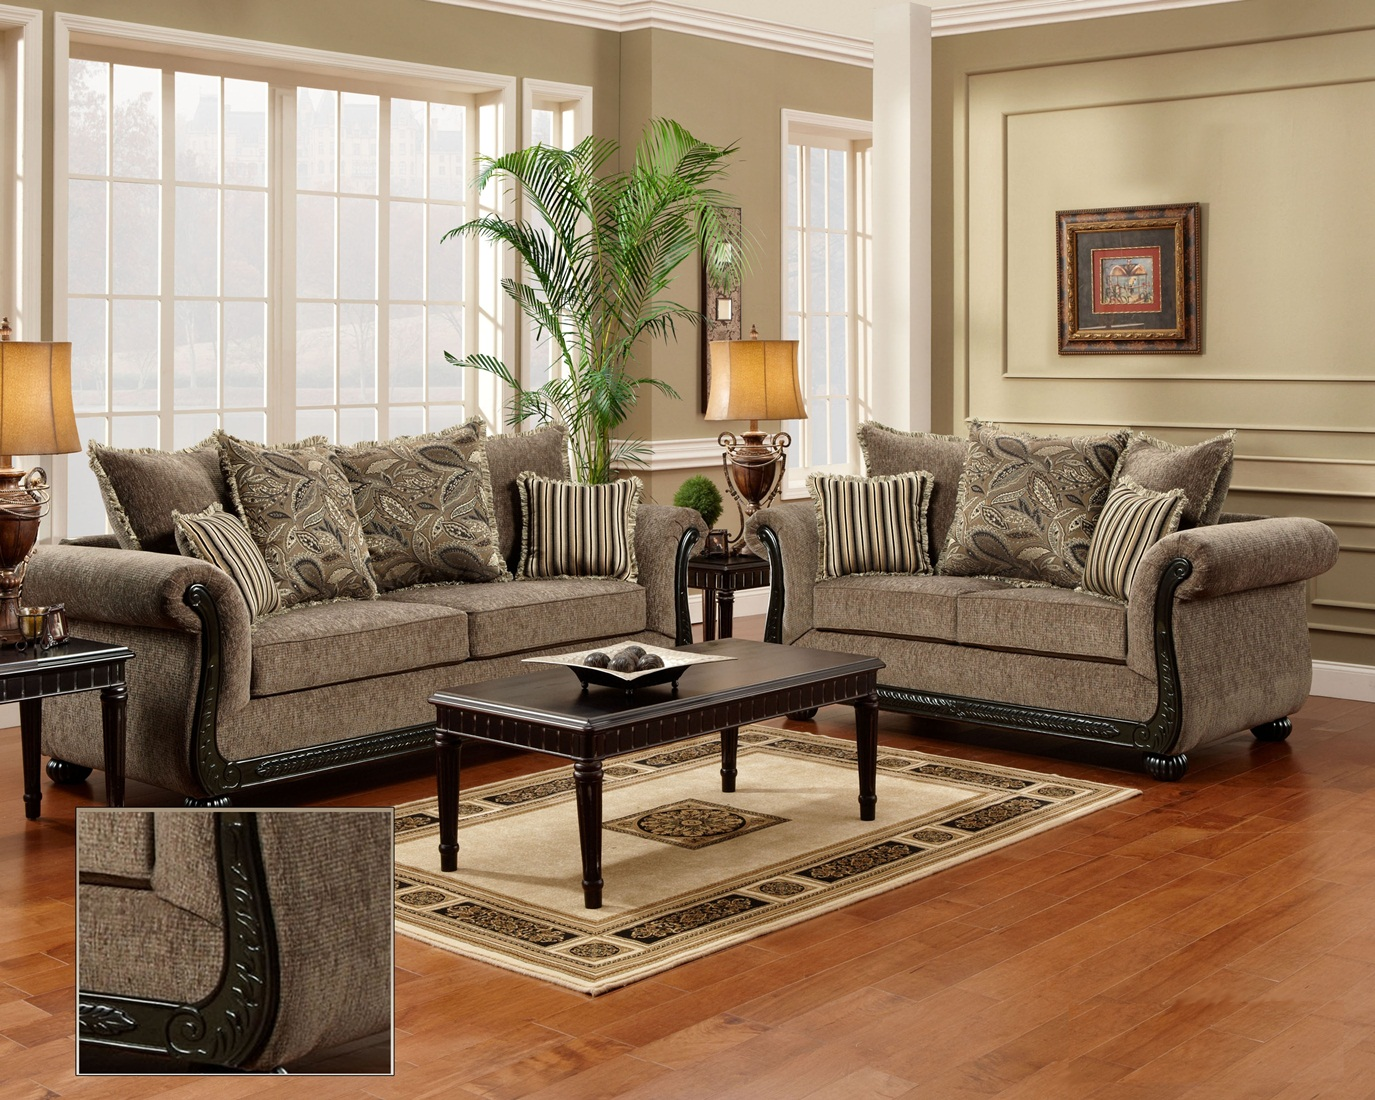 Lounge Couch Dream Java Chenille Sofa & Love Seat Living Room Furniture ...